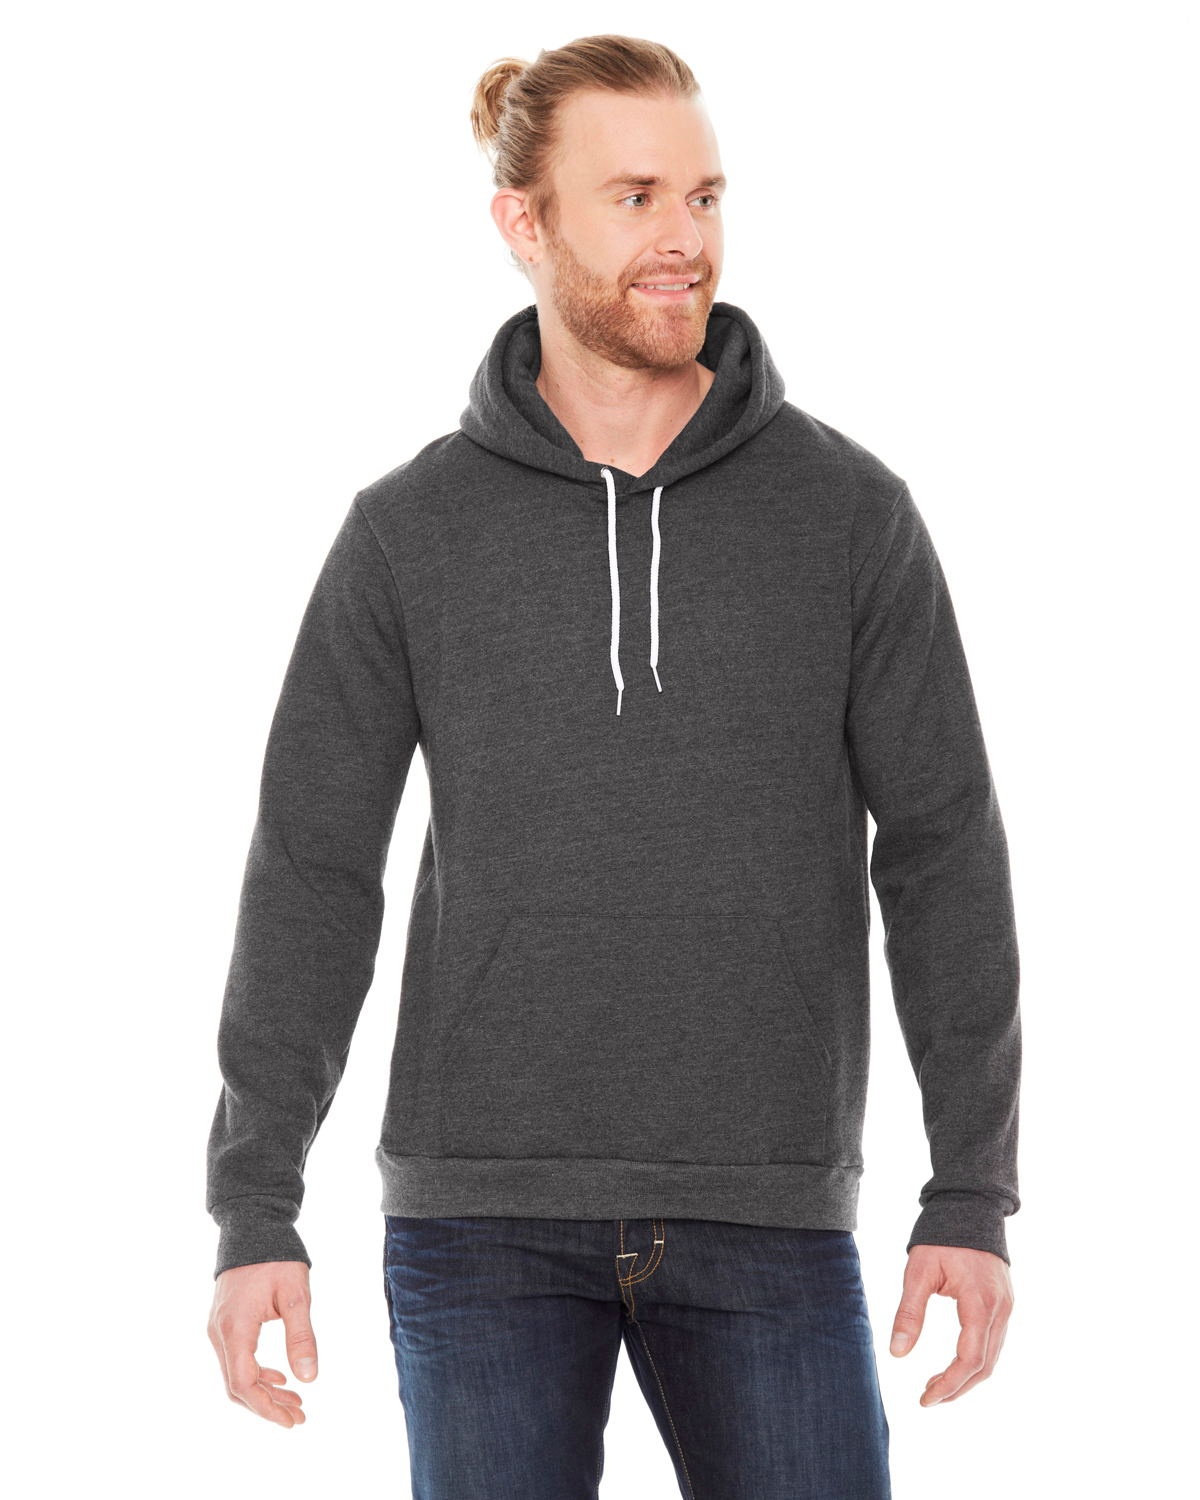 click to view Dk Heather Grey